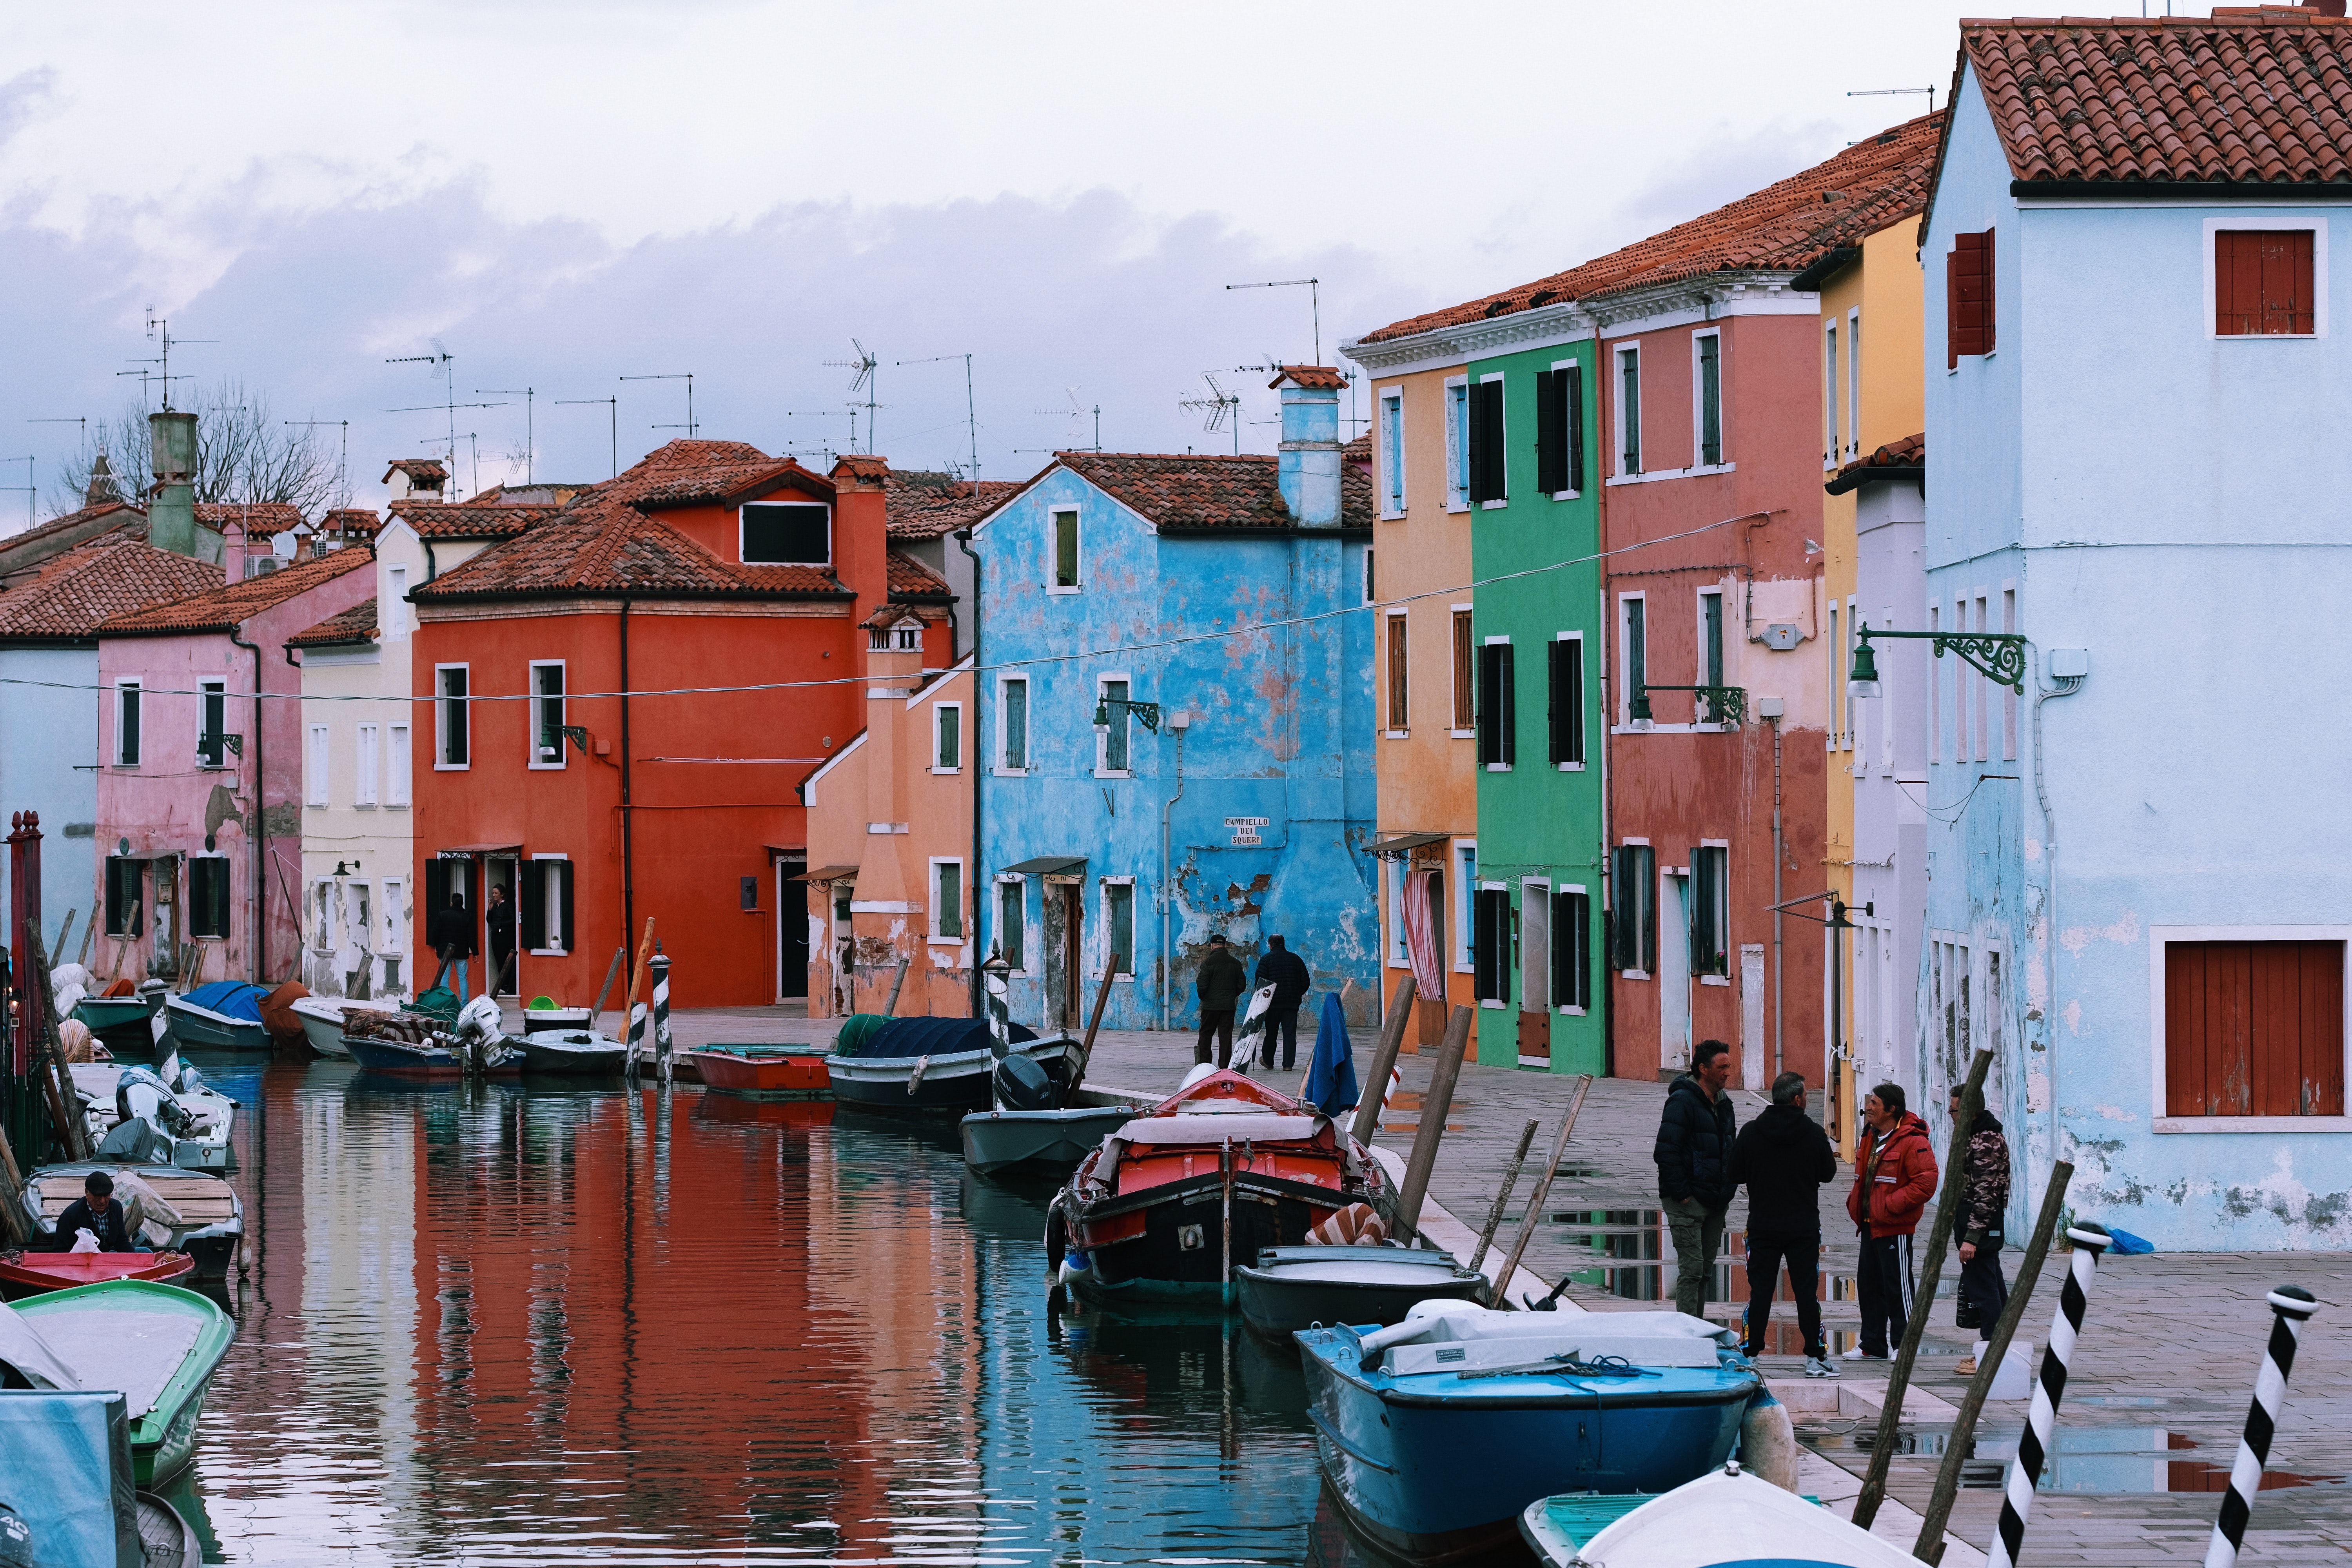 people standing near houses and river during daytime